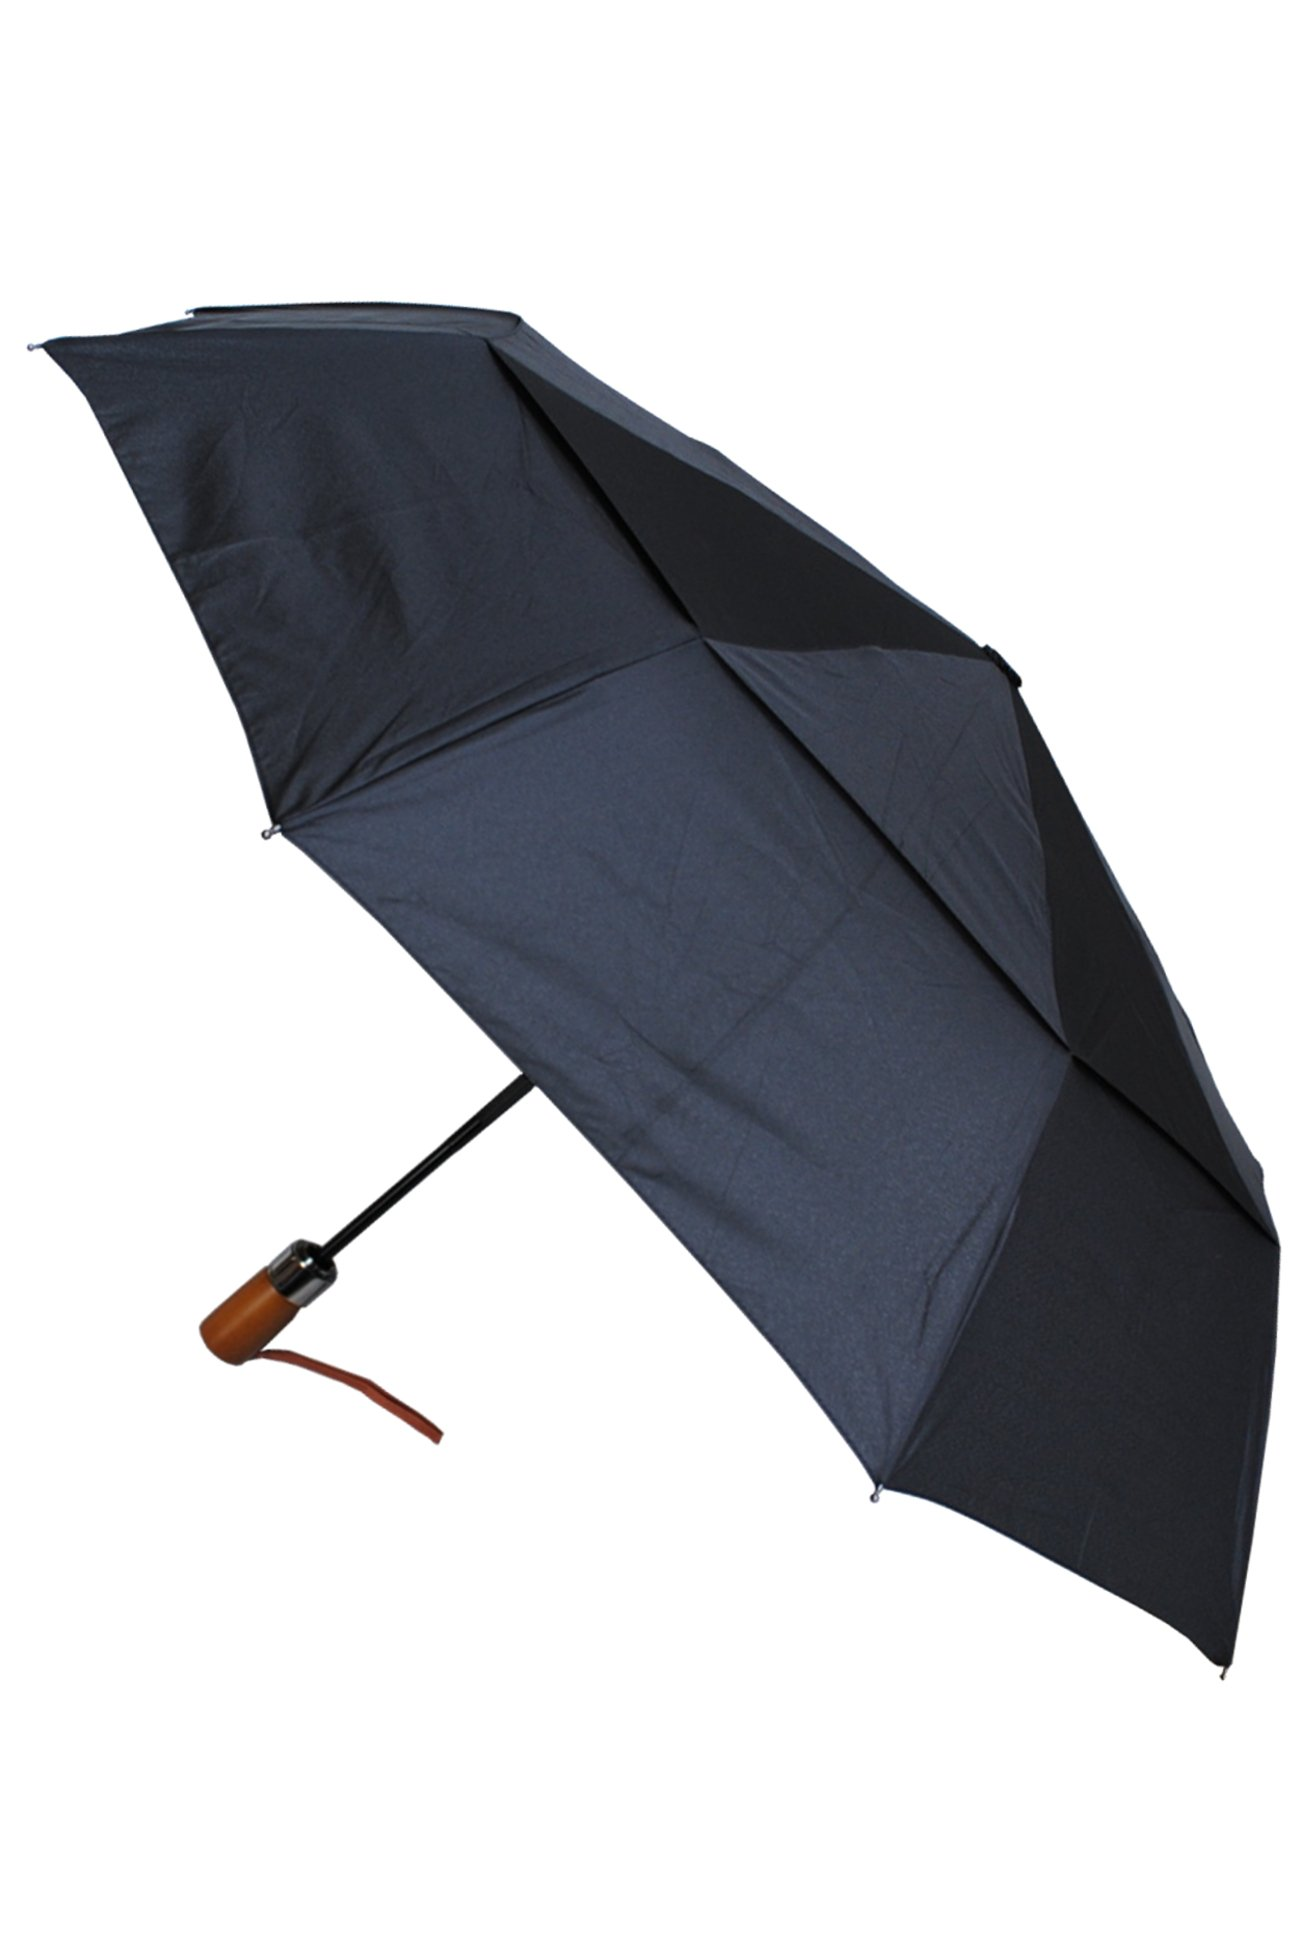 COLLAR AND CUFFS LONDON - 80KPH 9 Rib STRONG Reinforced WINDPROOF Frame With Fiberglass Umbrella - Wooden Straight Handle - Vented Double Canopy - Compact - Auto Open AND Close - Black